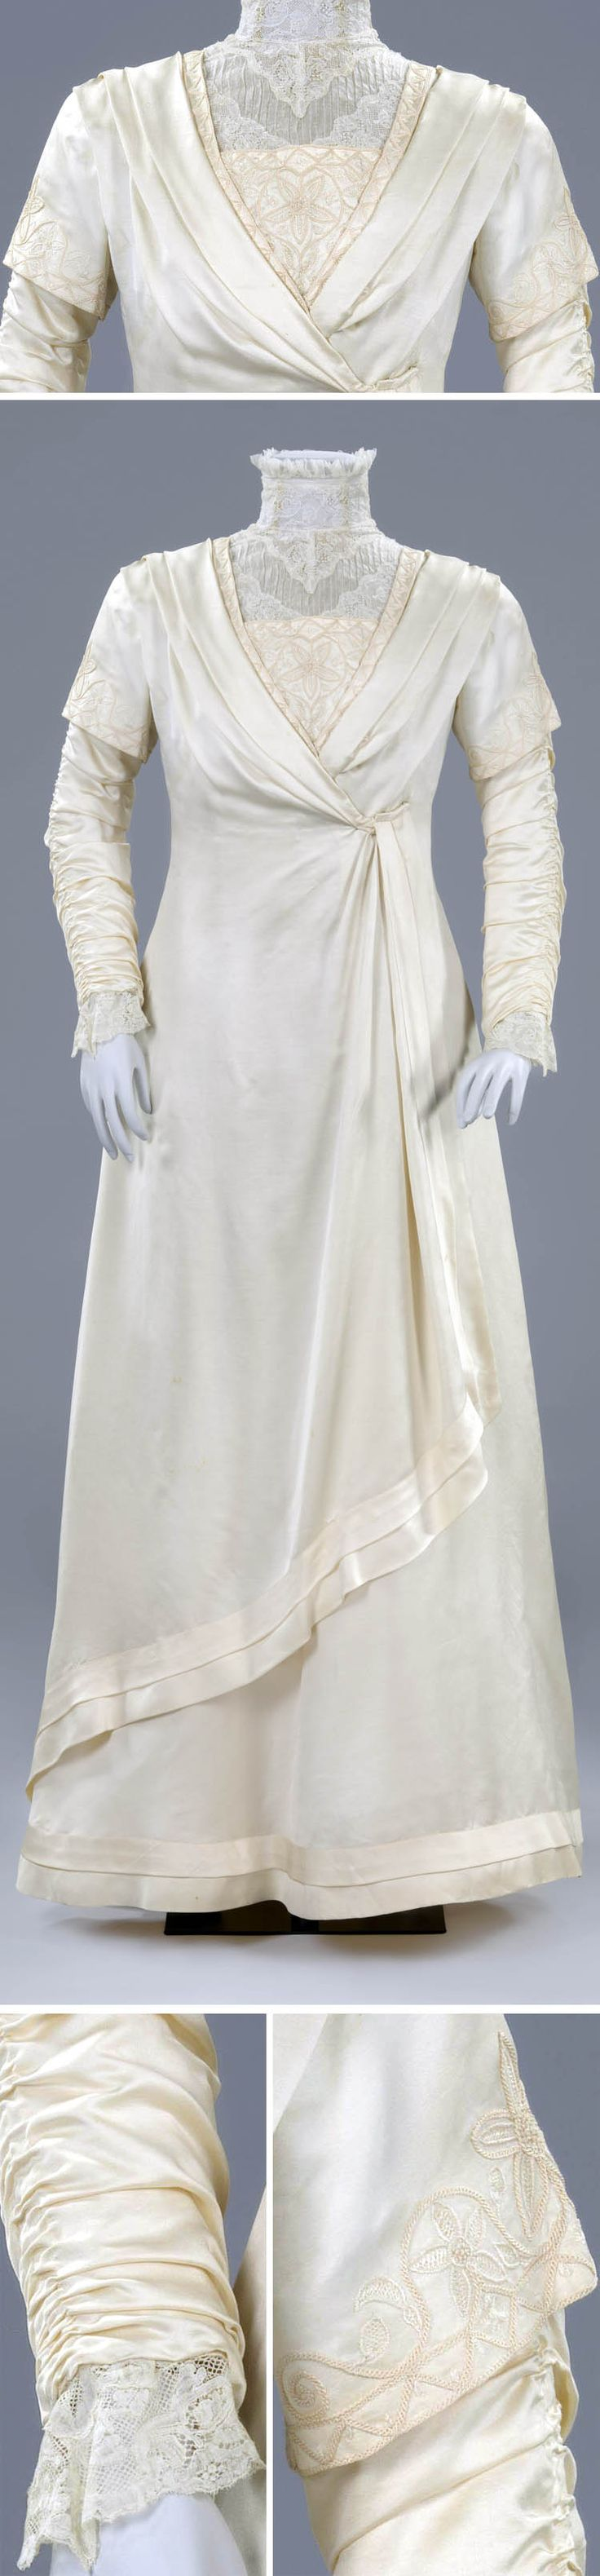 """Wedding dress, the Netherlands, in or before 1909. """"Robe Tanagréenne,"""" after terracotta figurines from Greek town of Tanagra, introduced in Paris in 1908. White satin with gaze de soie, 18th century Mechlin bobbin lace, and passementerie. One-piece gown with petticoat and matching glacé leather shoes. Front closure hidden under tunic-shaped flap. Rijksmuseum"""